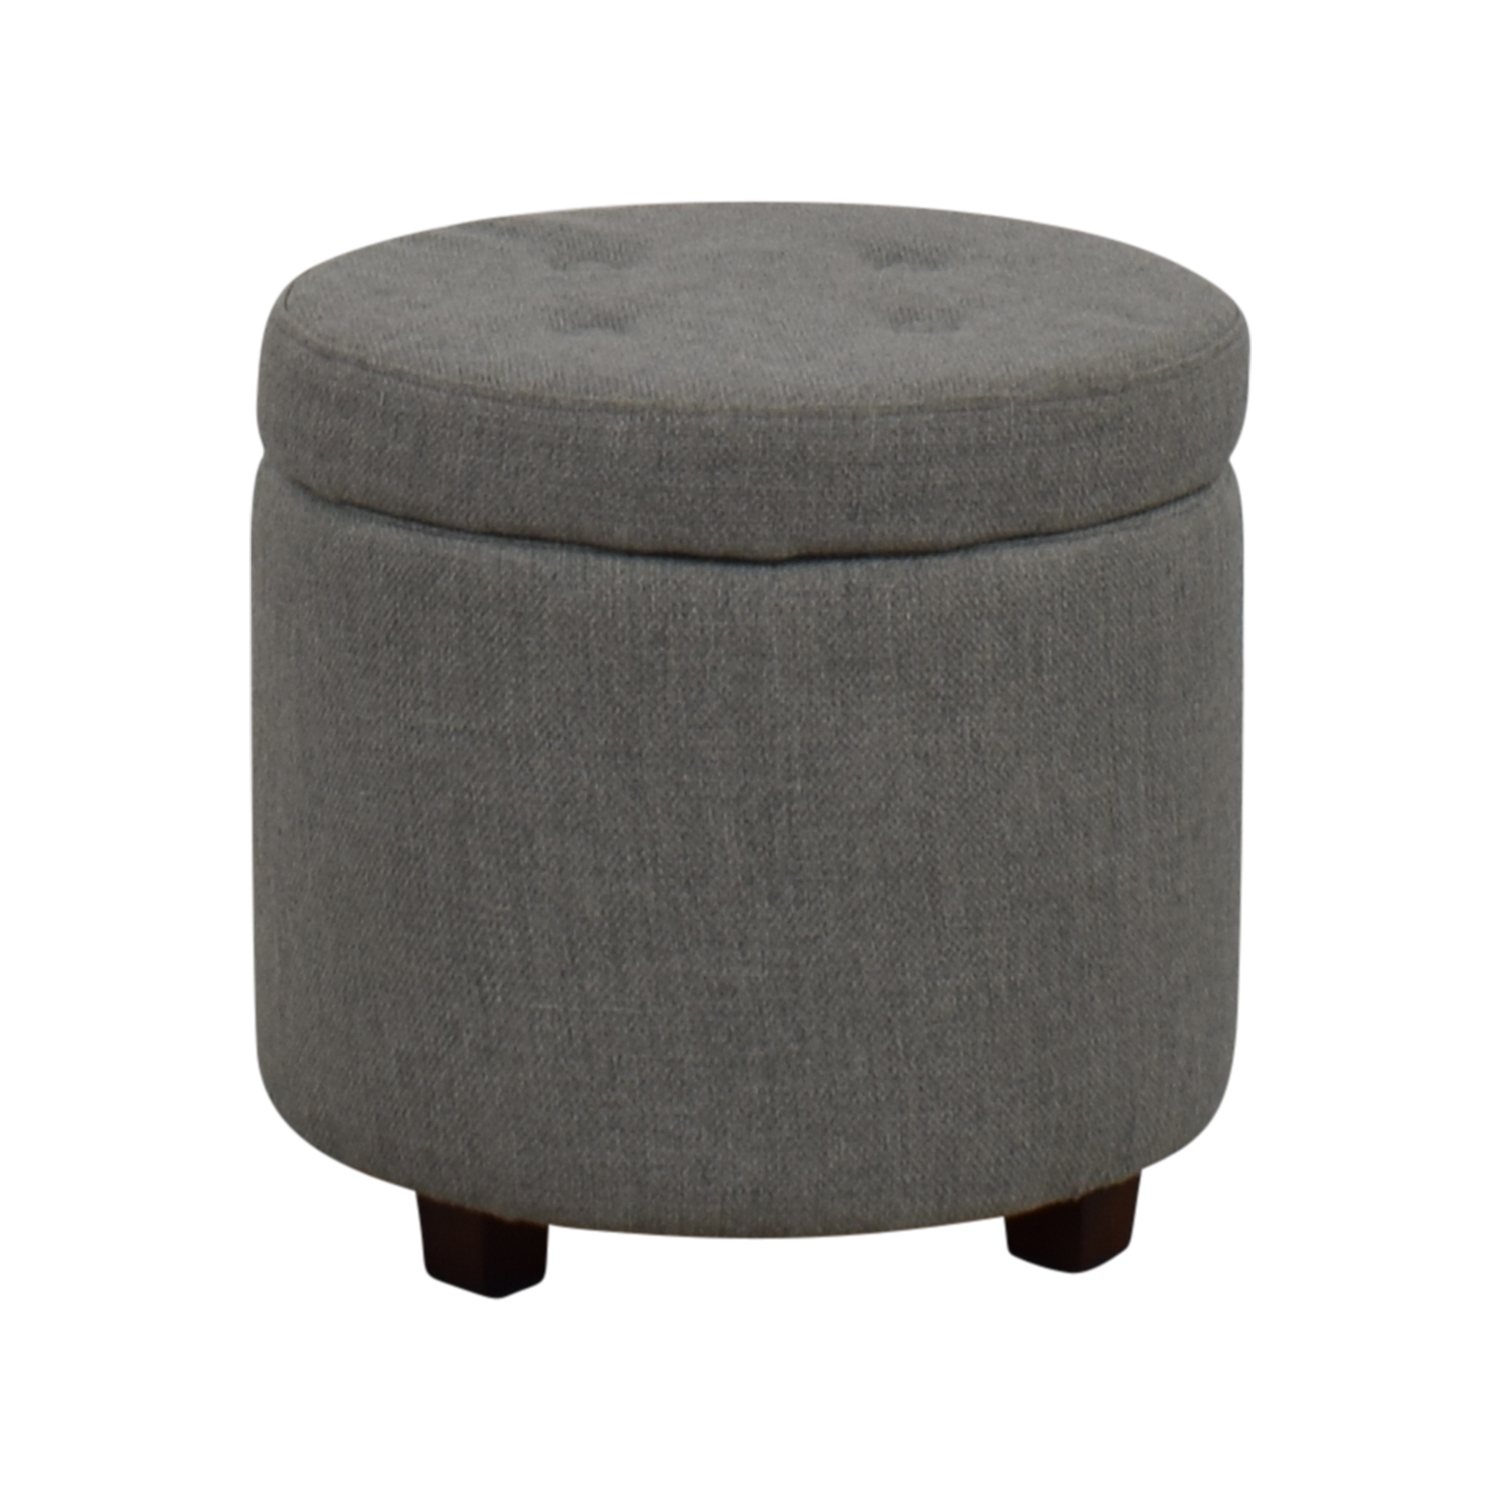 Ordinaire Target Target Grey Tufted Storage Ottoman Storage ...